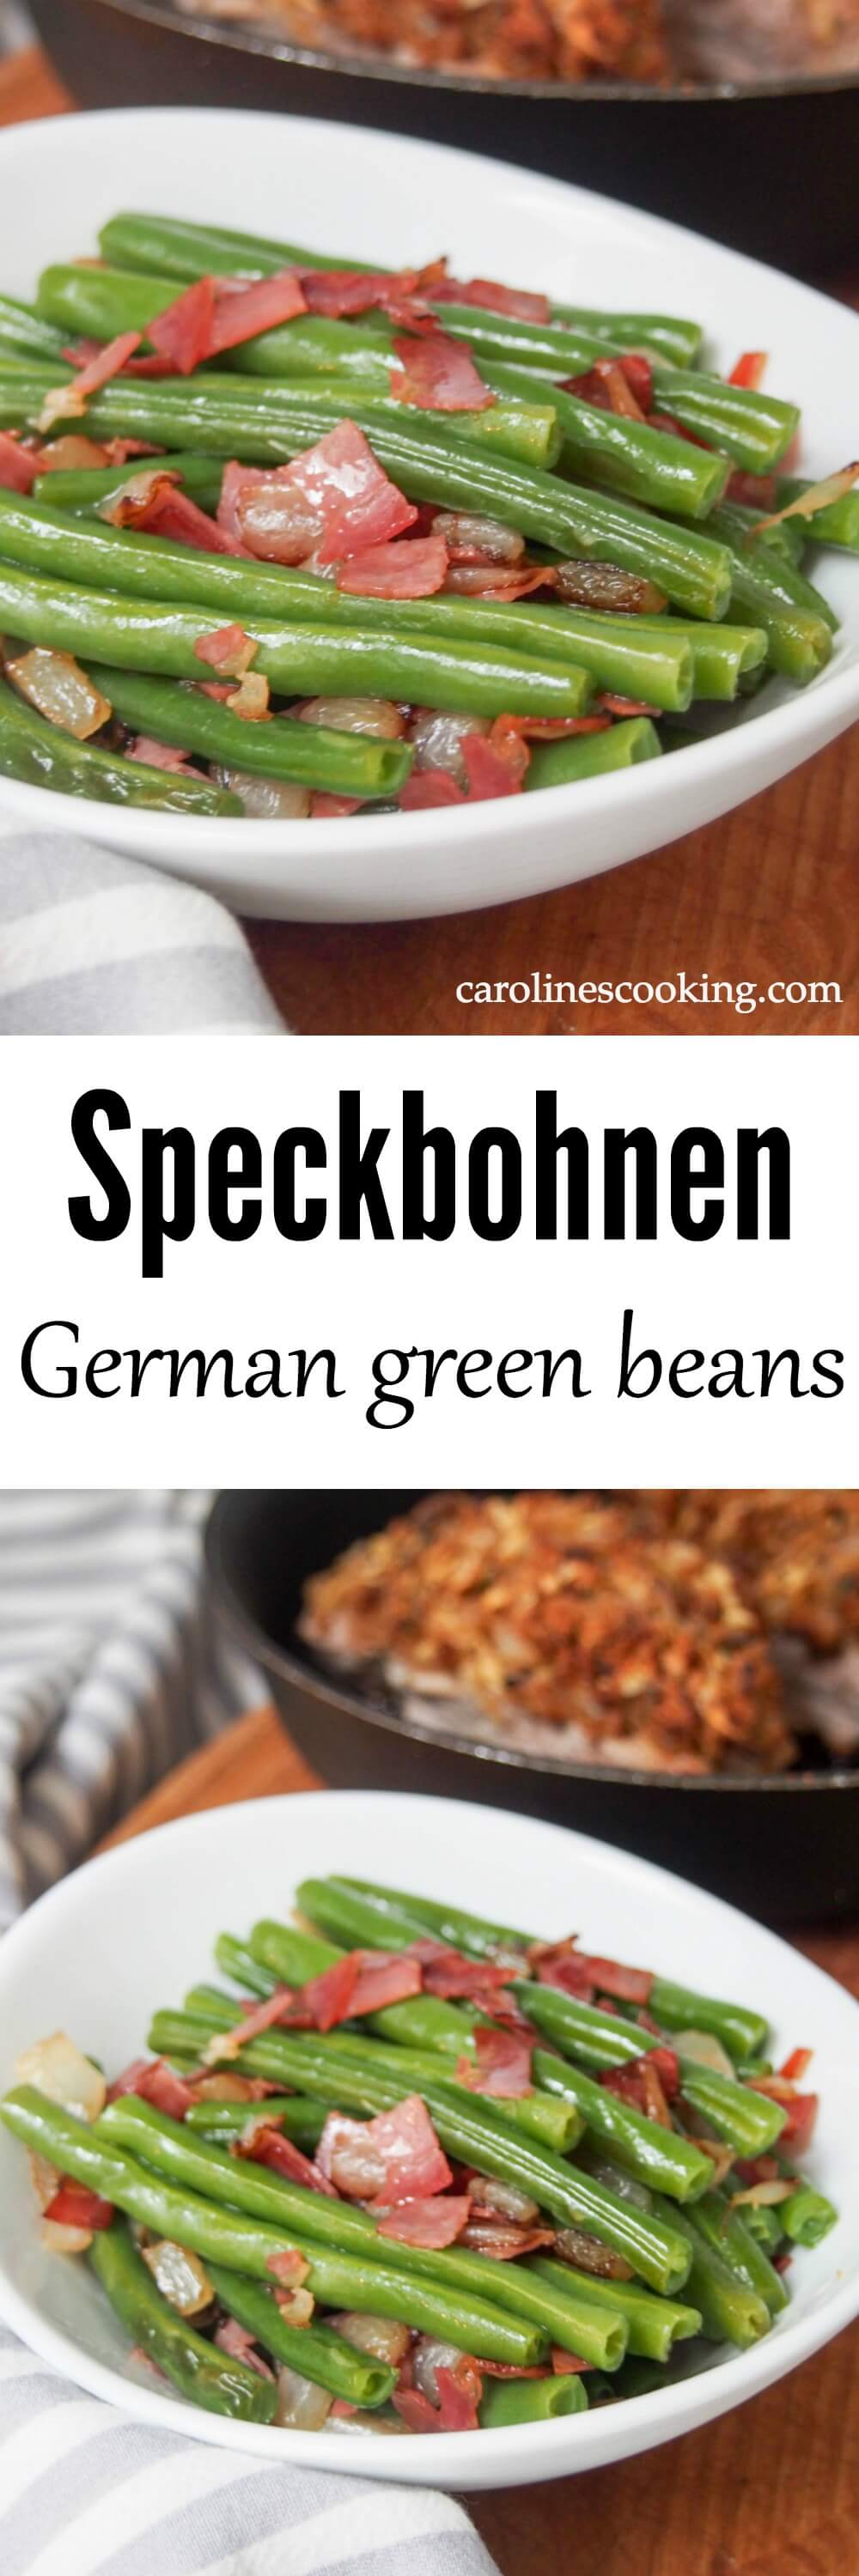 You'd be surprised a couple simple additions brighten up plain beans, but that's exactly the case with these speckbohnen, German green beans. A tasty side.